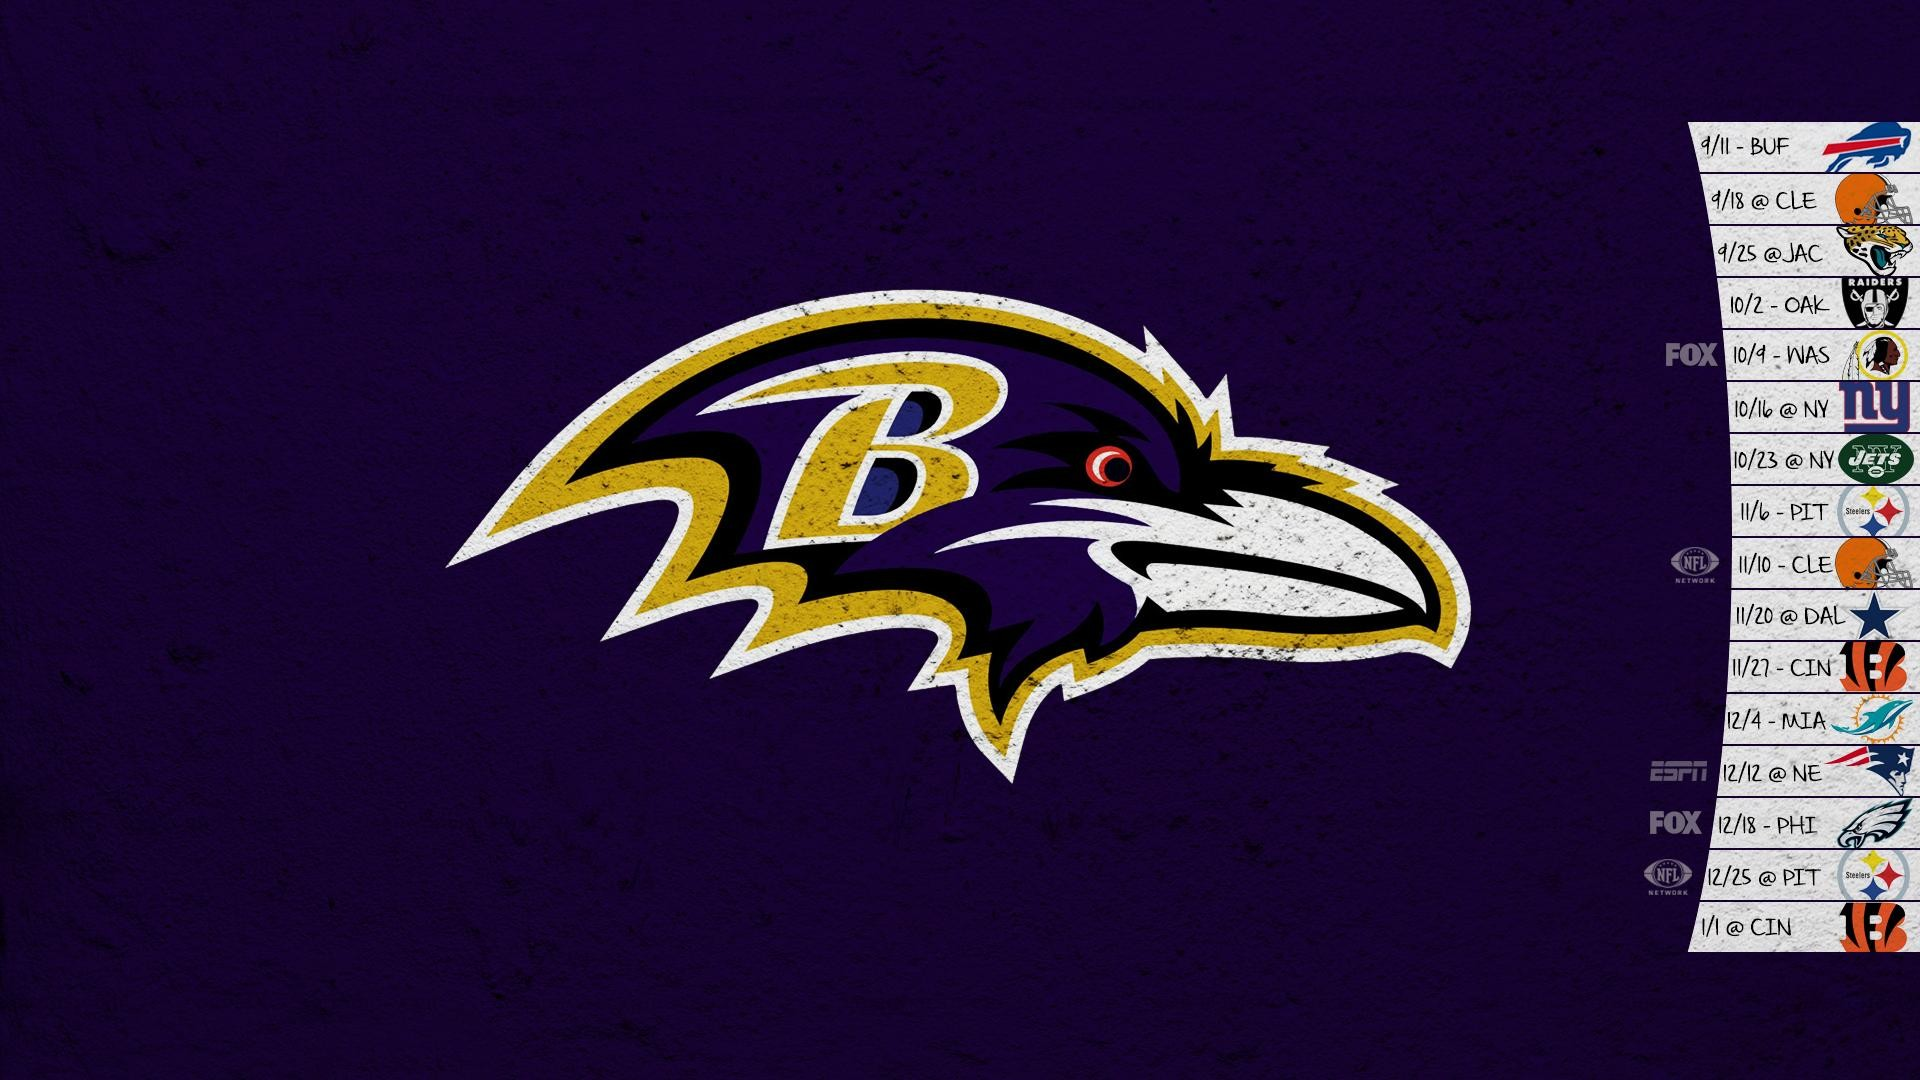 Ravens and orioles wallpaper 64 images - Baltimore ravens wallpapers android ...